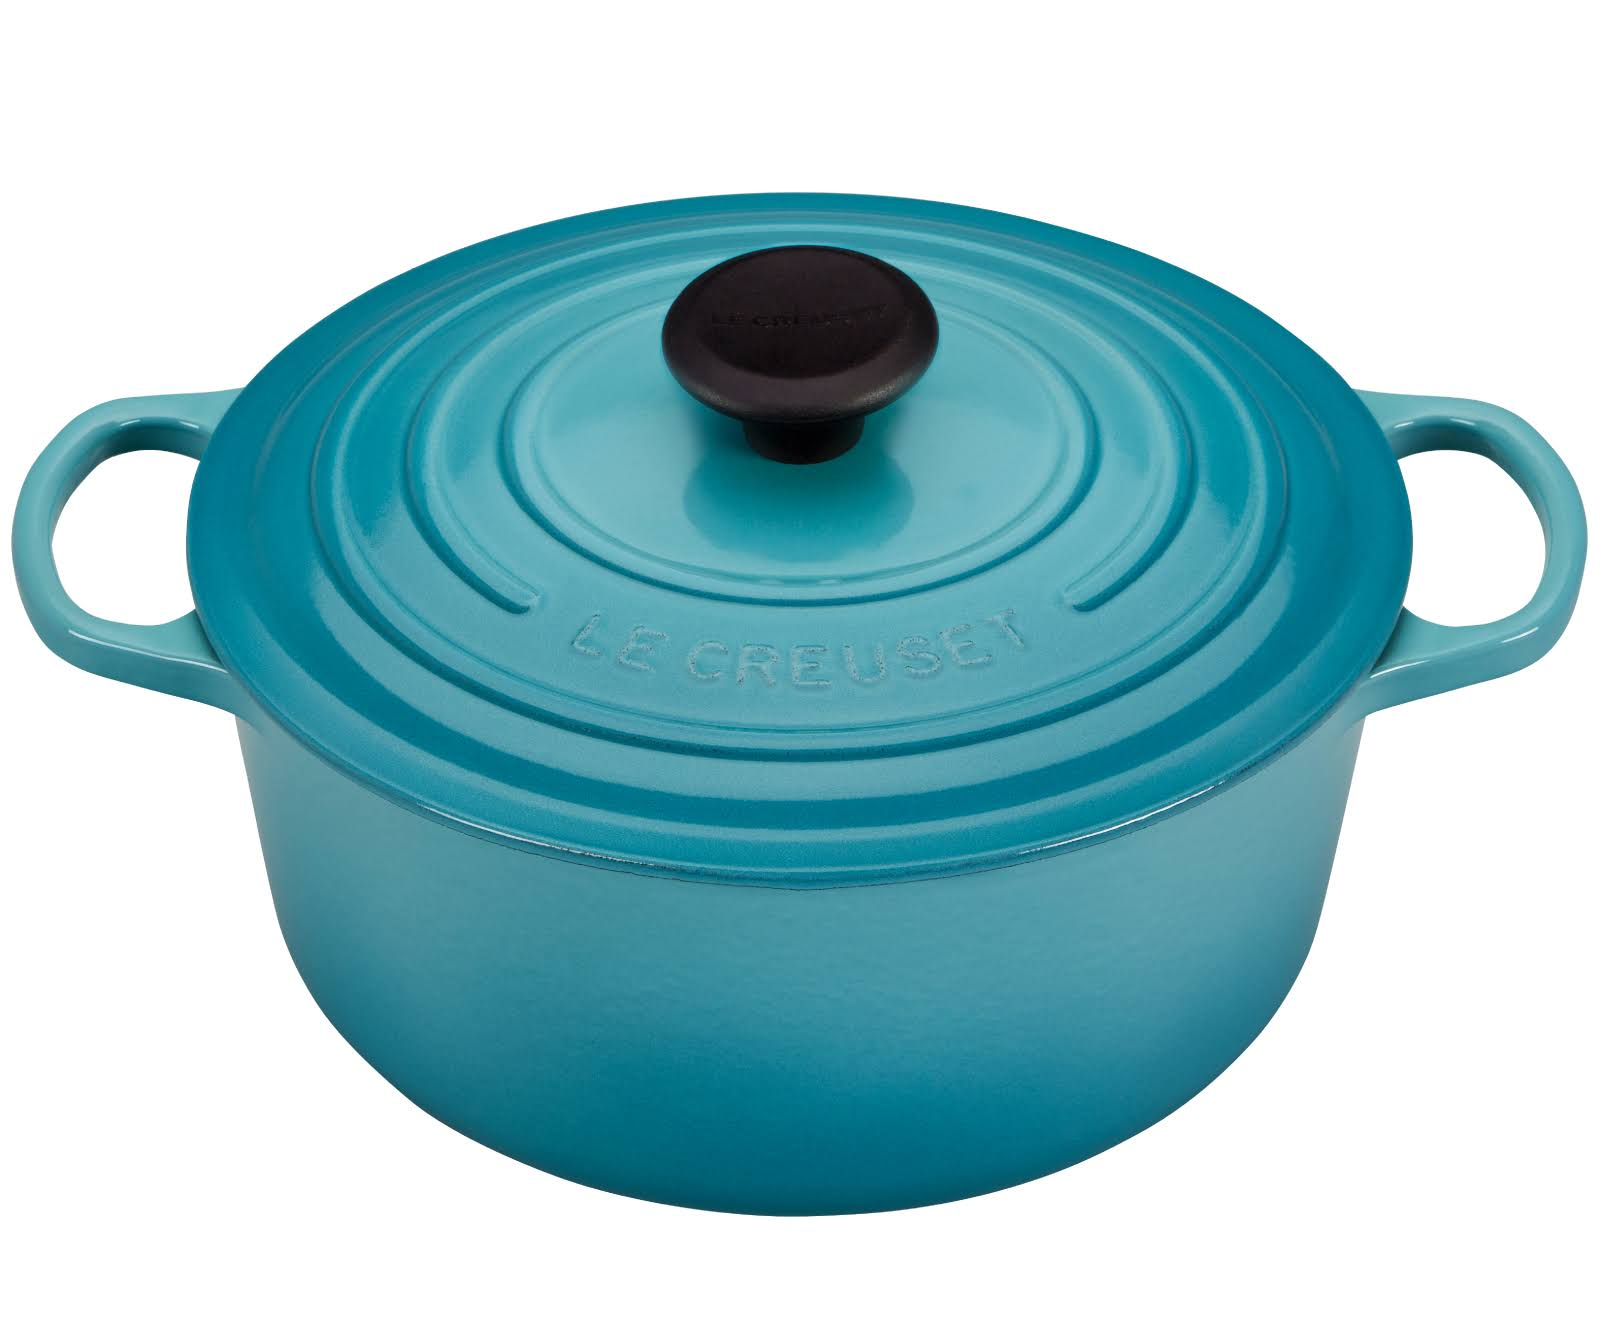 Le Creuset Signature Cast Iron Round Dutch Oven - 5.2l, Caribbean